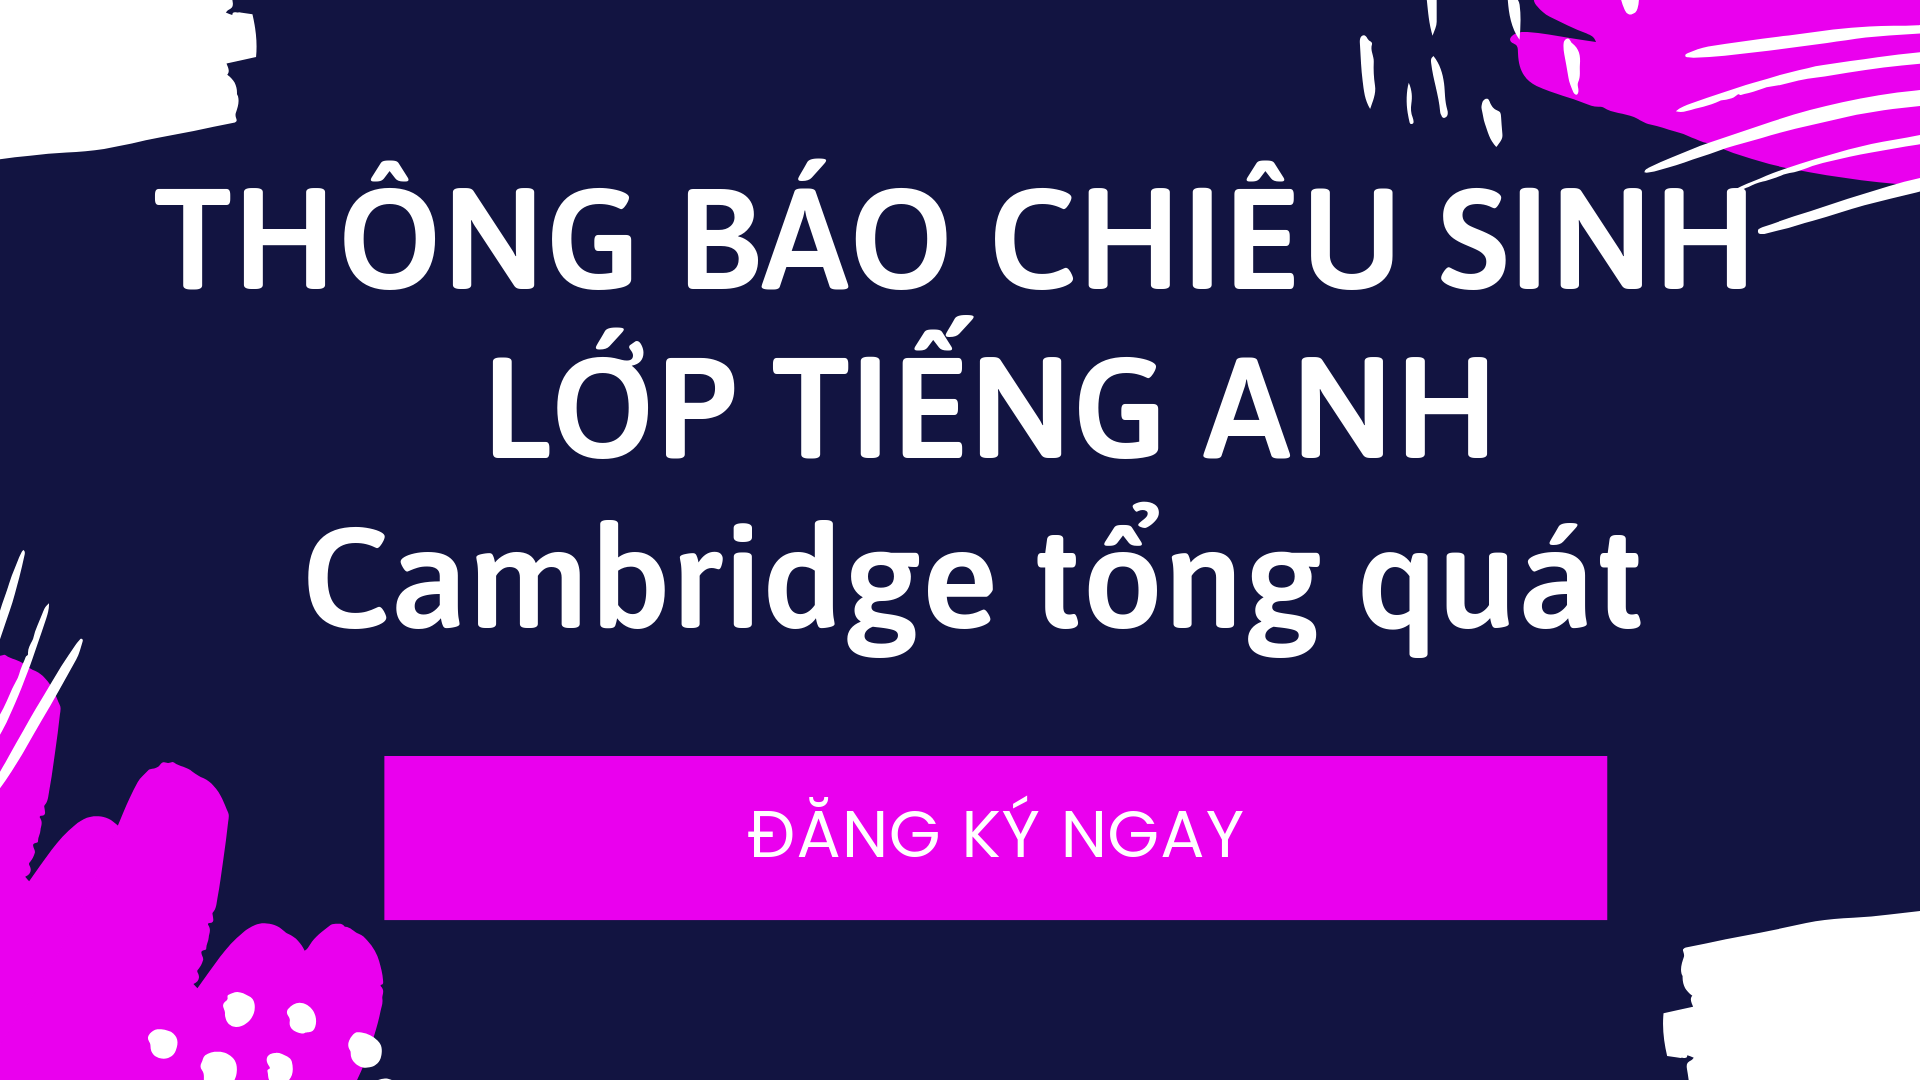 Chieu Sinh Lop Tieng Anh